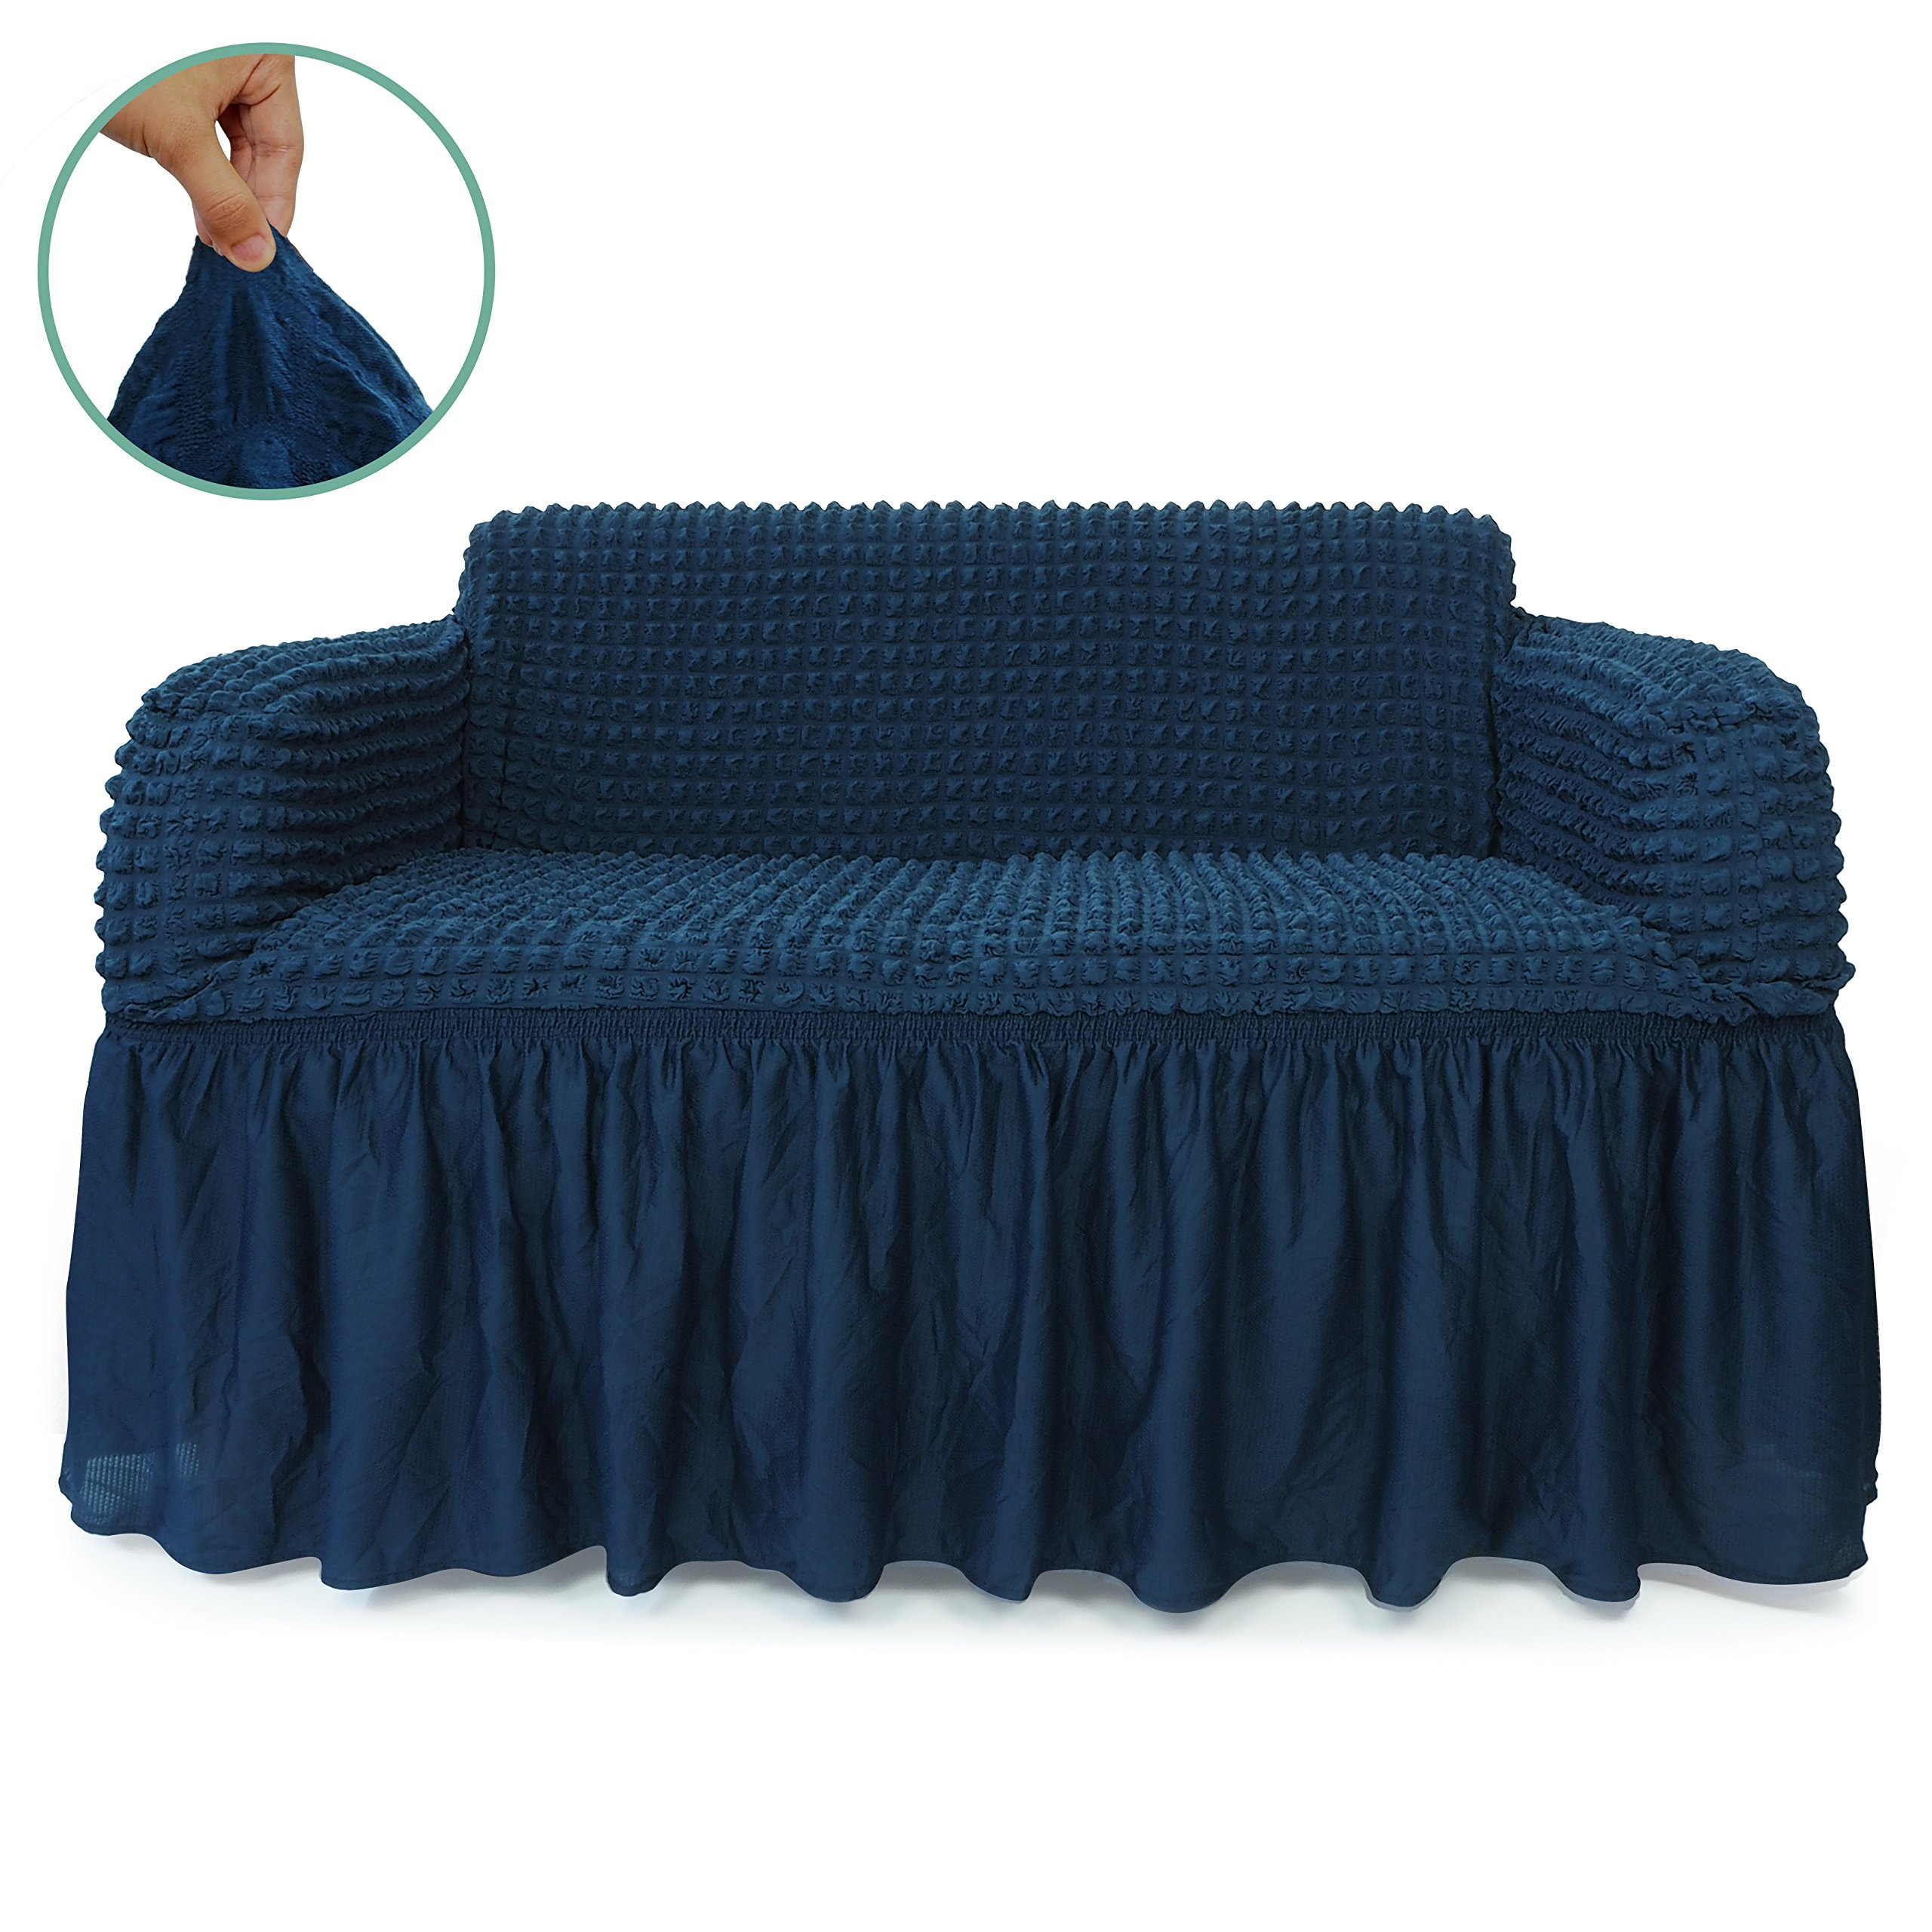 STARS 1-Piece Stretchable Easy Fit Sofa Cover Durable Furniture Slipcover in Country Style Made of Machine Washable and Quick-Drying Fabric for 2-seat sofa and couch(Loveseat,Navy Blue) by